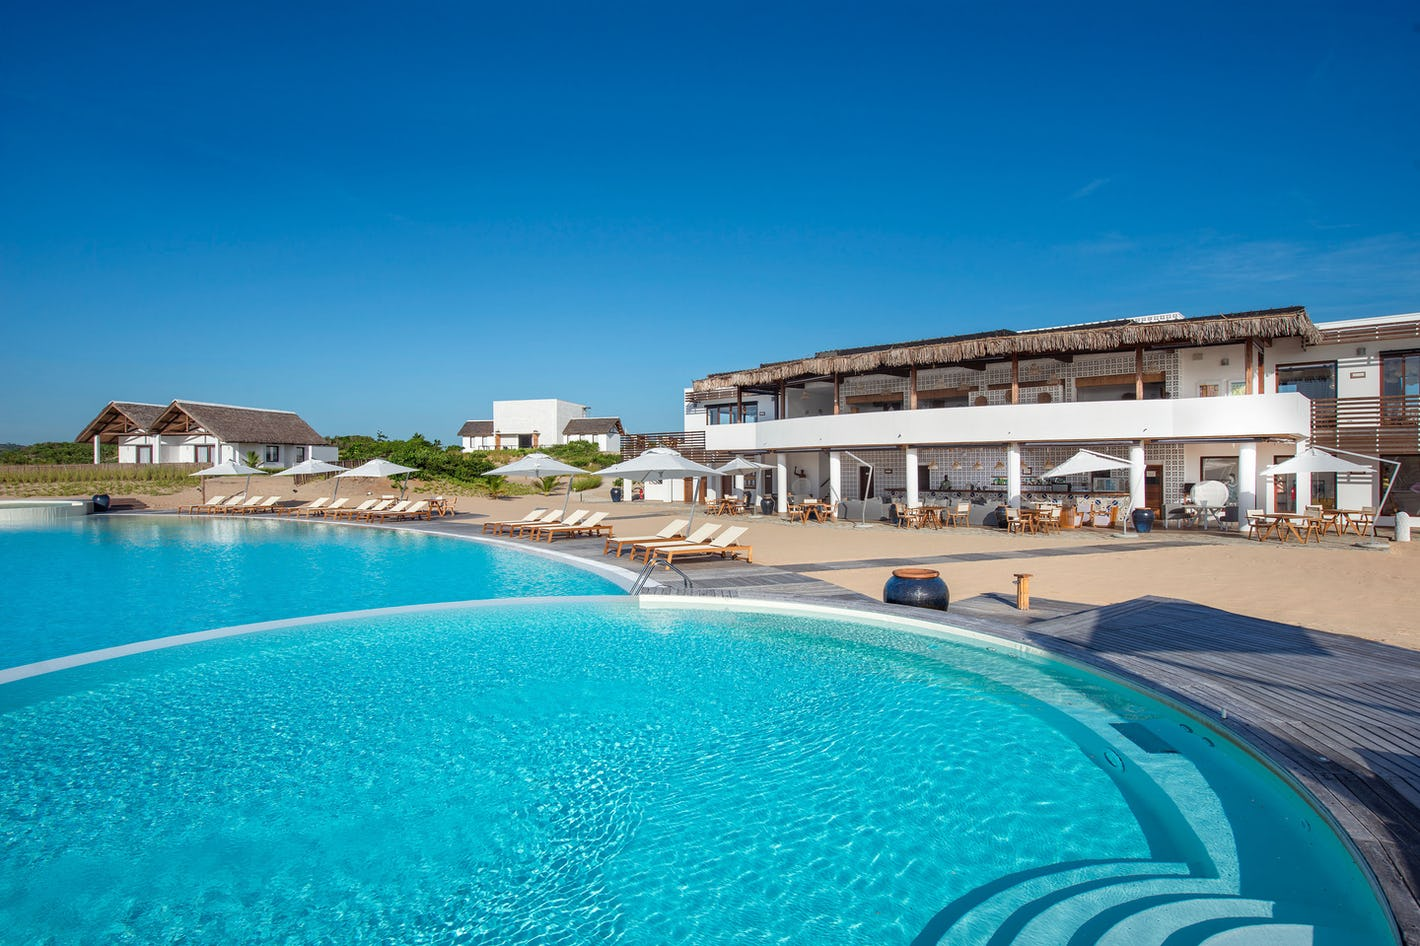 A Sophisticated Modern Beach Resort With Luxurious Accommodation And Five Star Hospitality The Spa